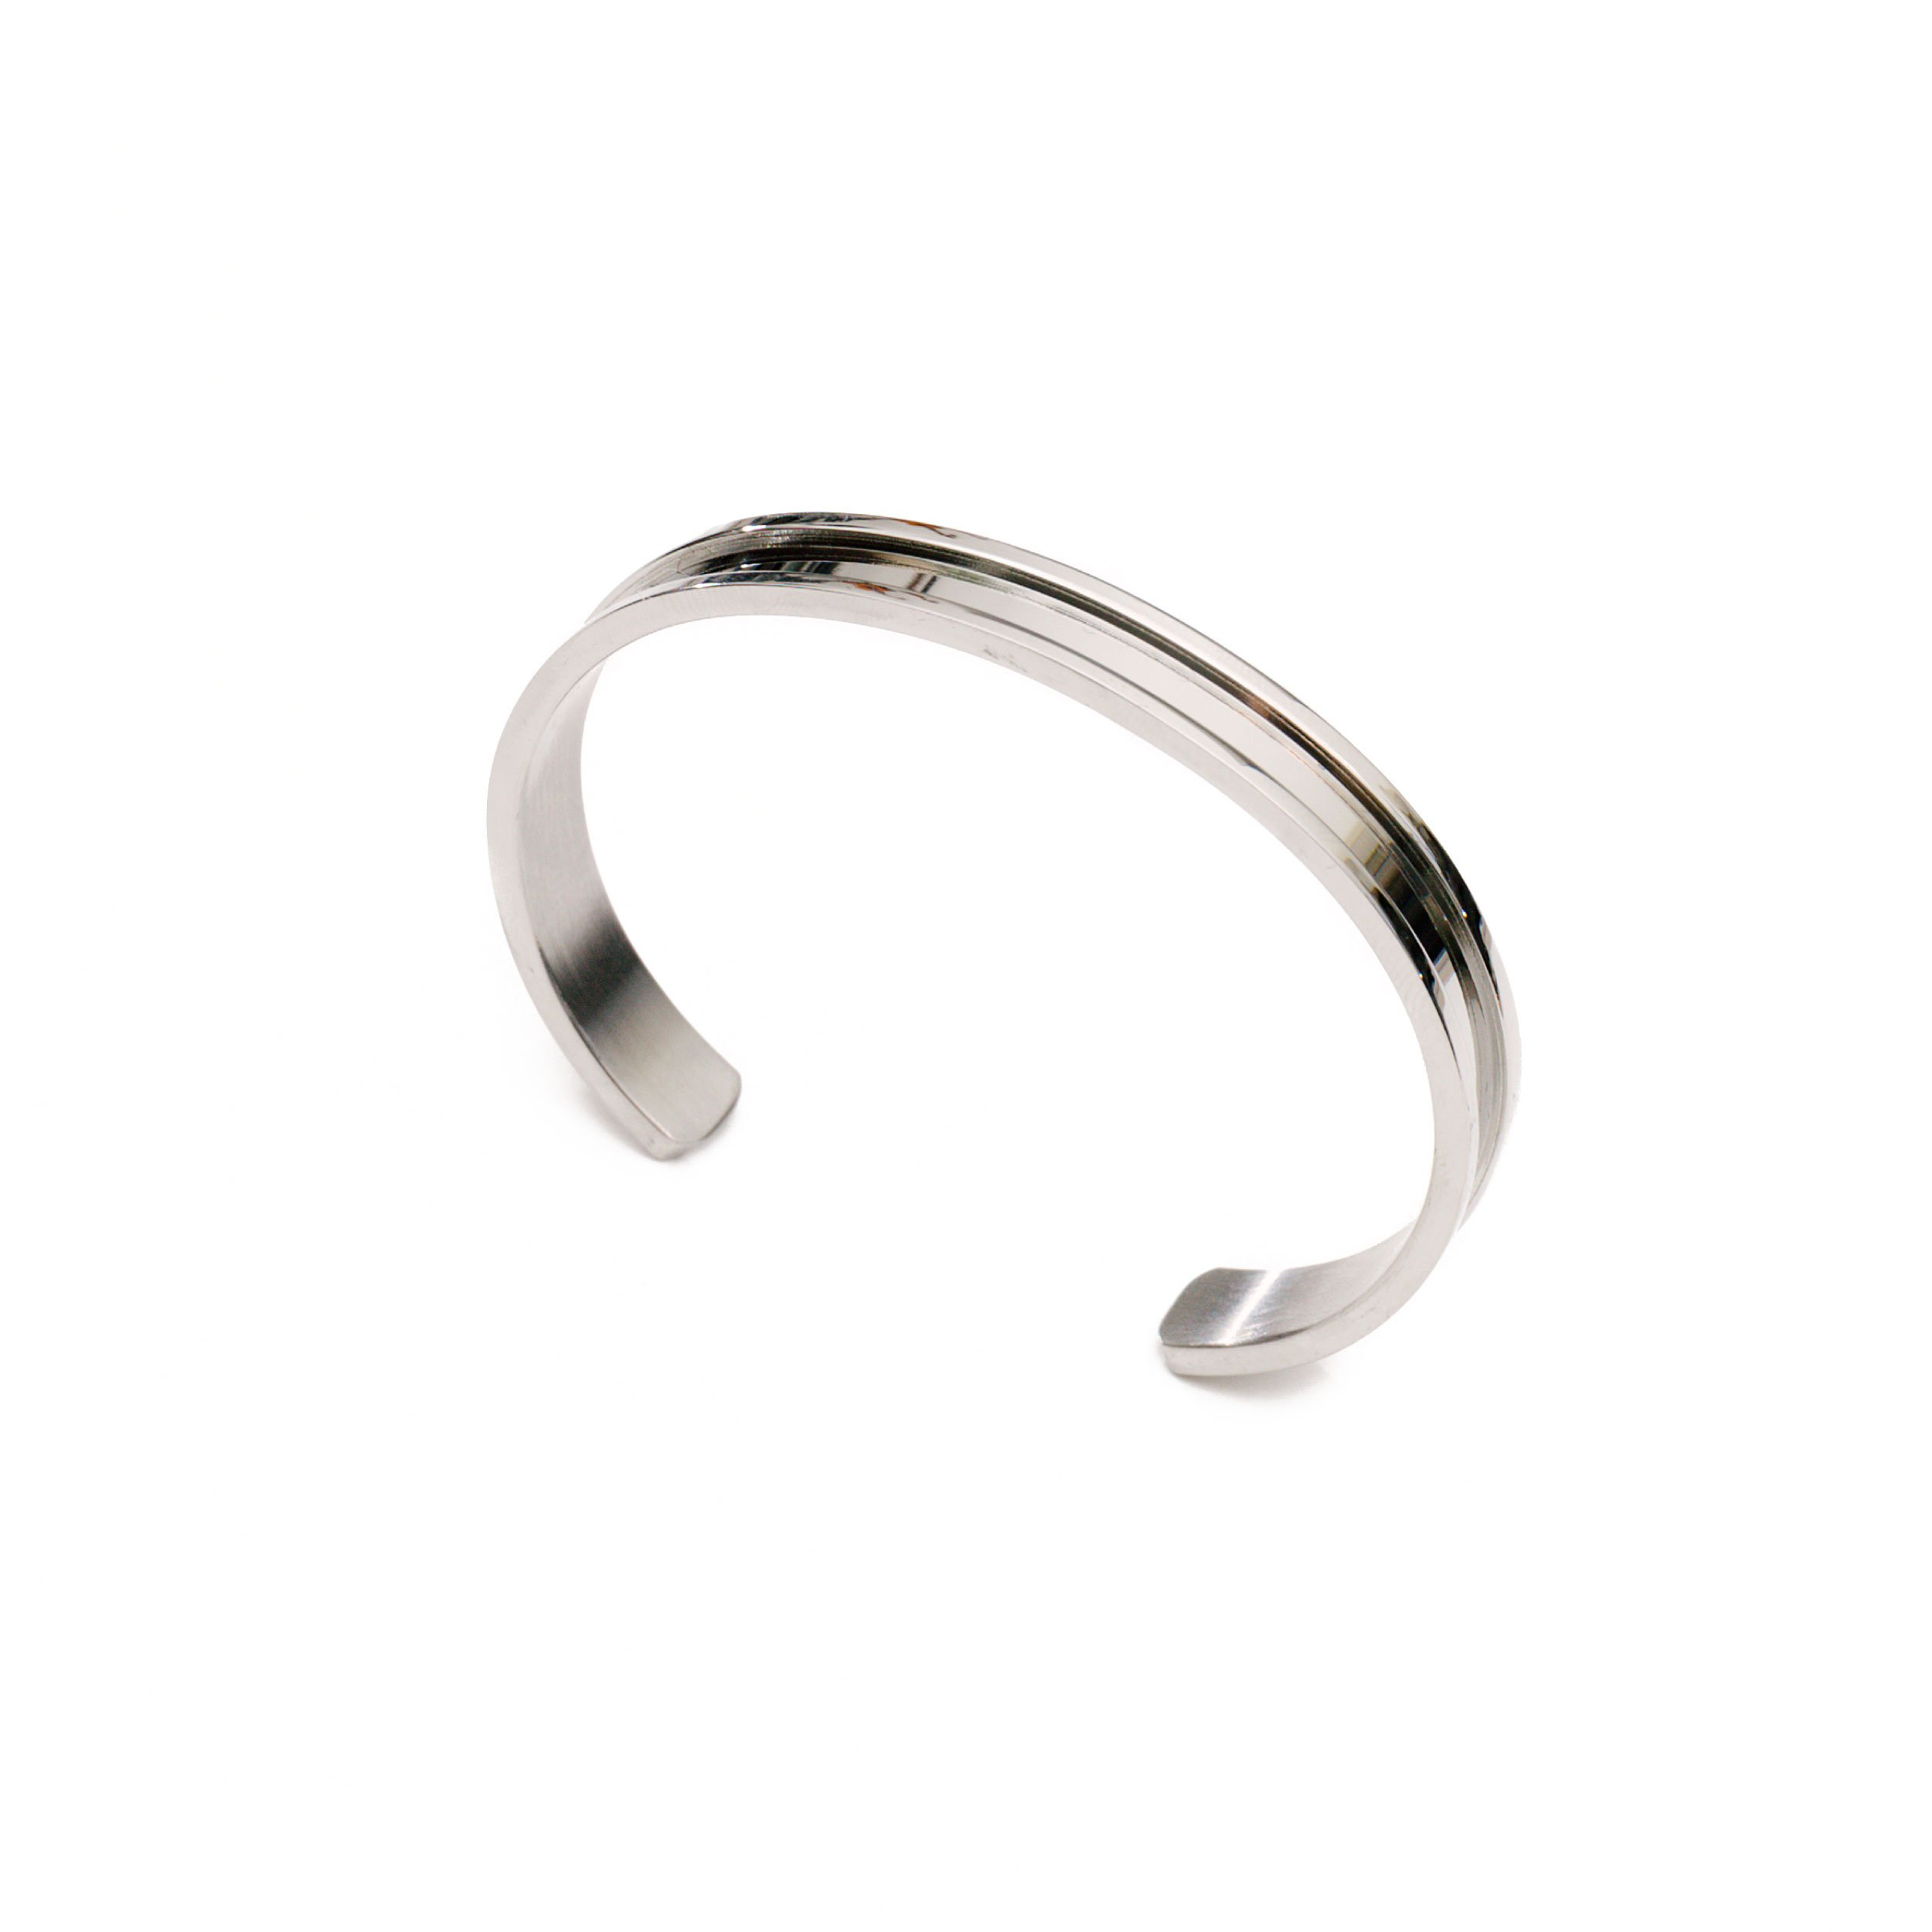 Lucky Lady Collections Hair Tie Bracelet by Silver Grooved Cuff Bangle (1 Pack) | Women's Fashion Bracelets for Comfort and Style | No-Show Hair Elastic Bangles for Girls | Accessory or Gift